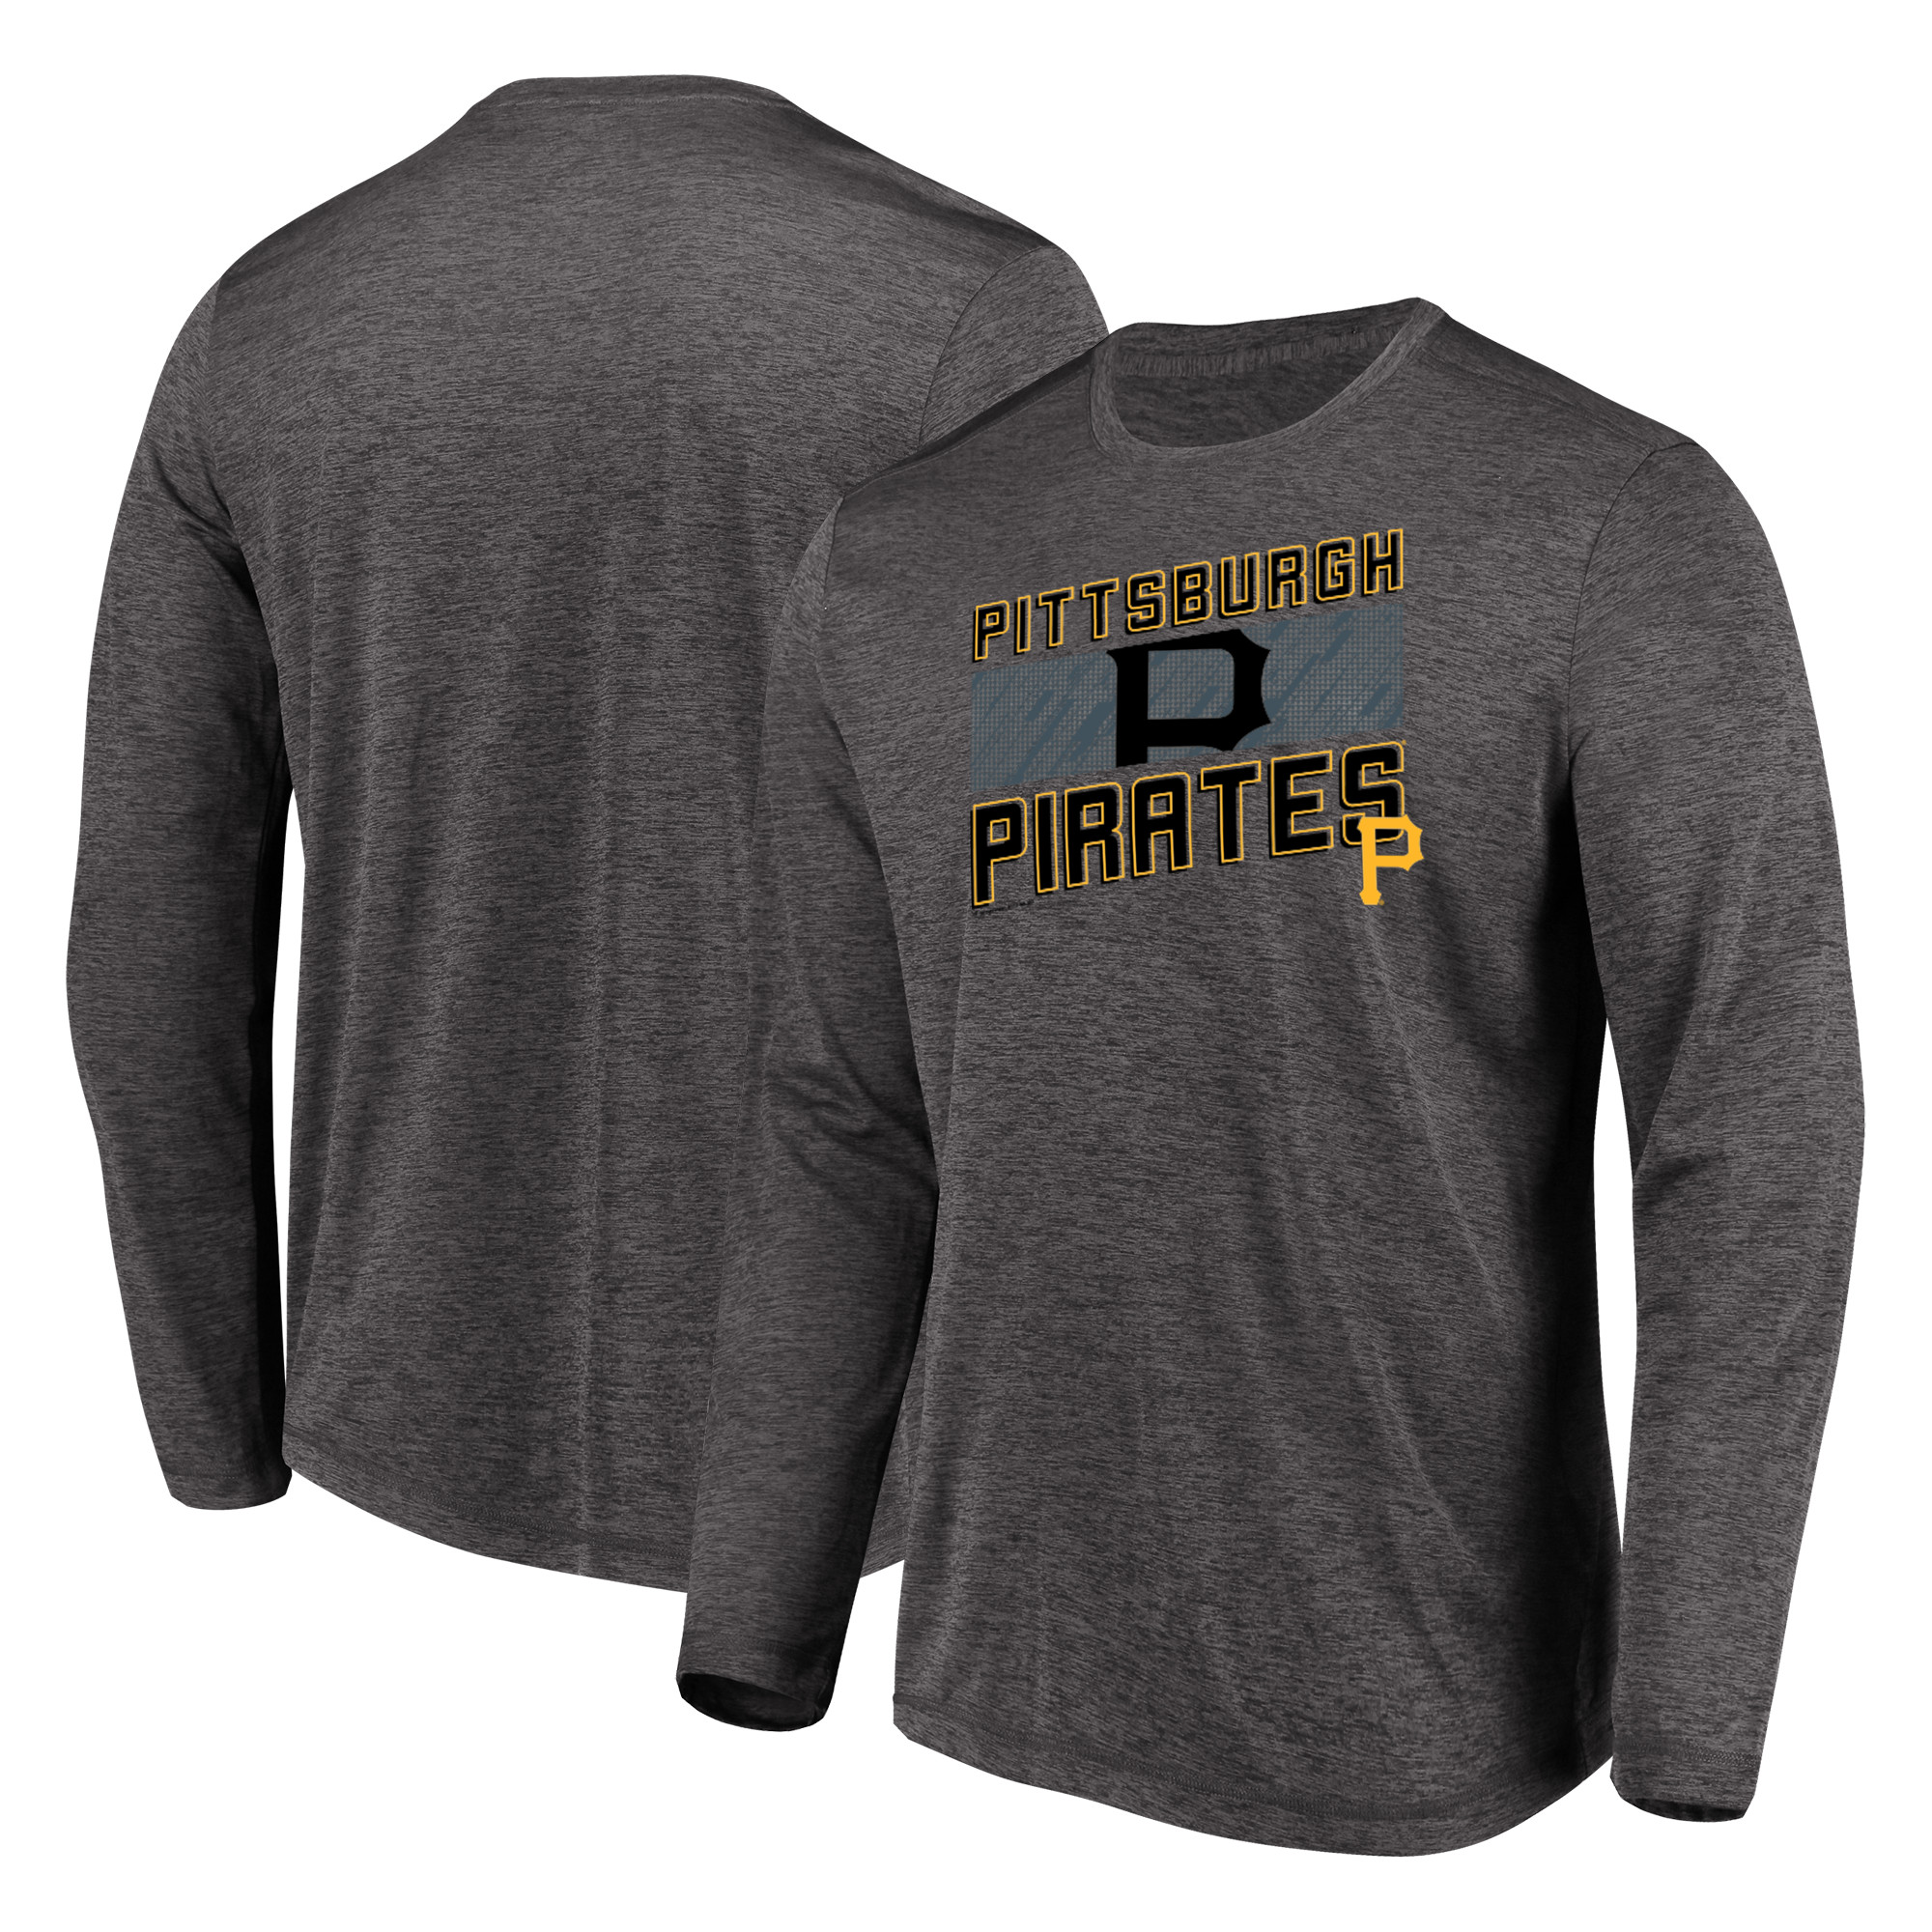 Men's Majestic Heathered Charcoal Pittsburgh Pirates Big & Tall Long Sleeve Team T-Shirt